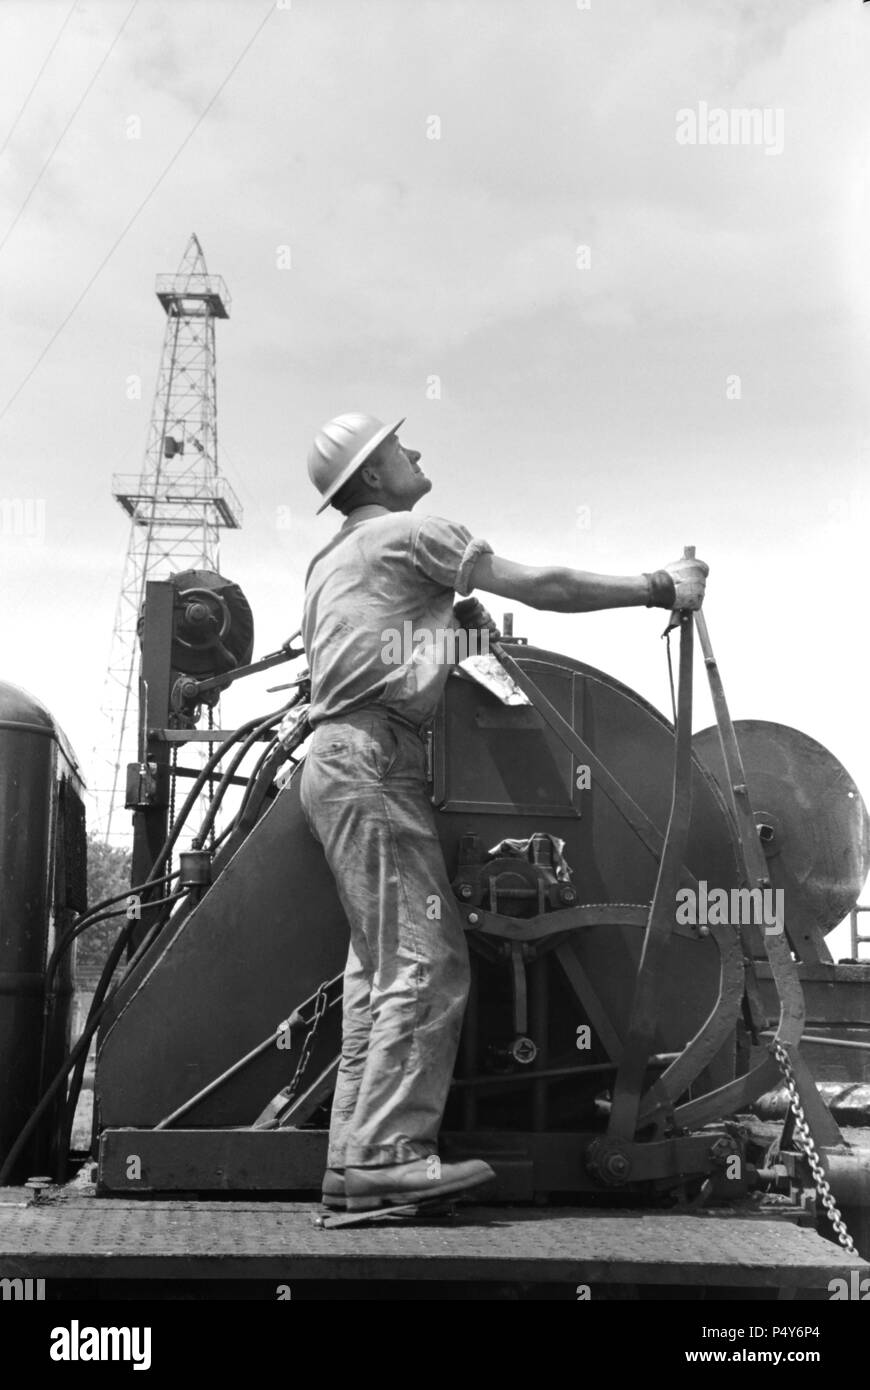 Winch Operator at Oil Well, Oklahoma City, Oklahoma, USA, Russell Lee, Farm Security Administration, August 1939 - Stock Image